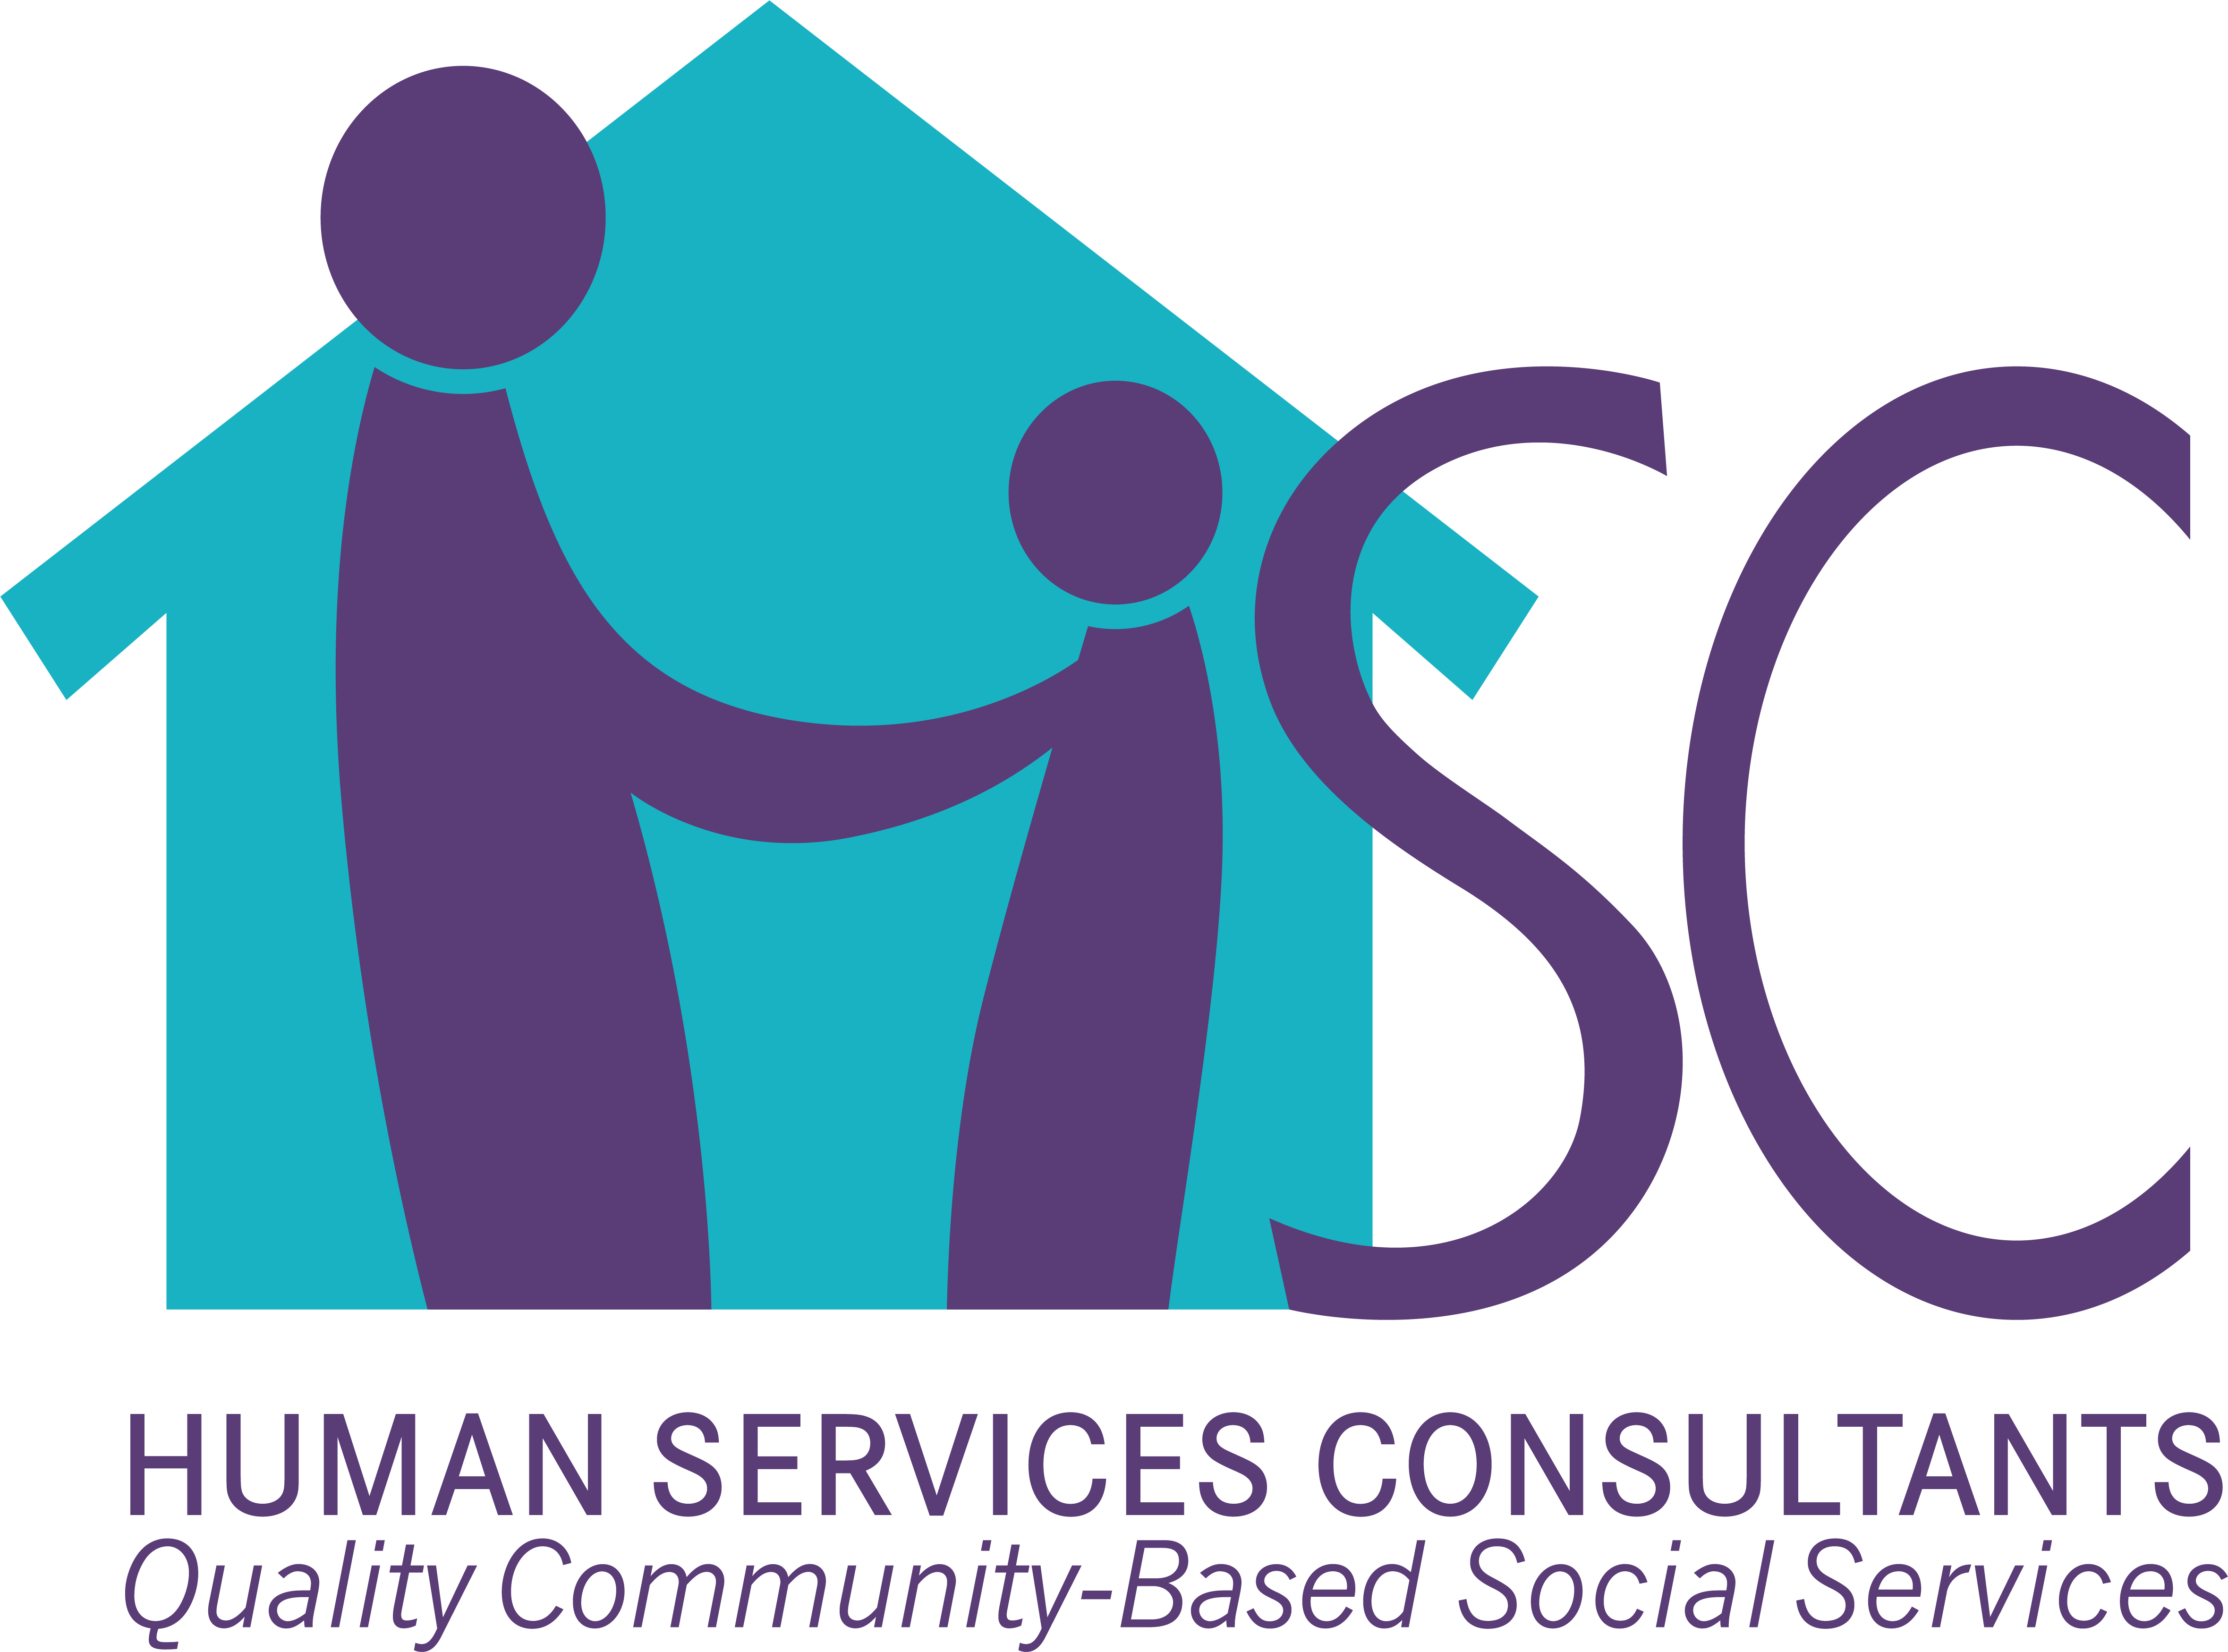 Human Services Consultants